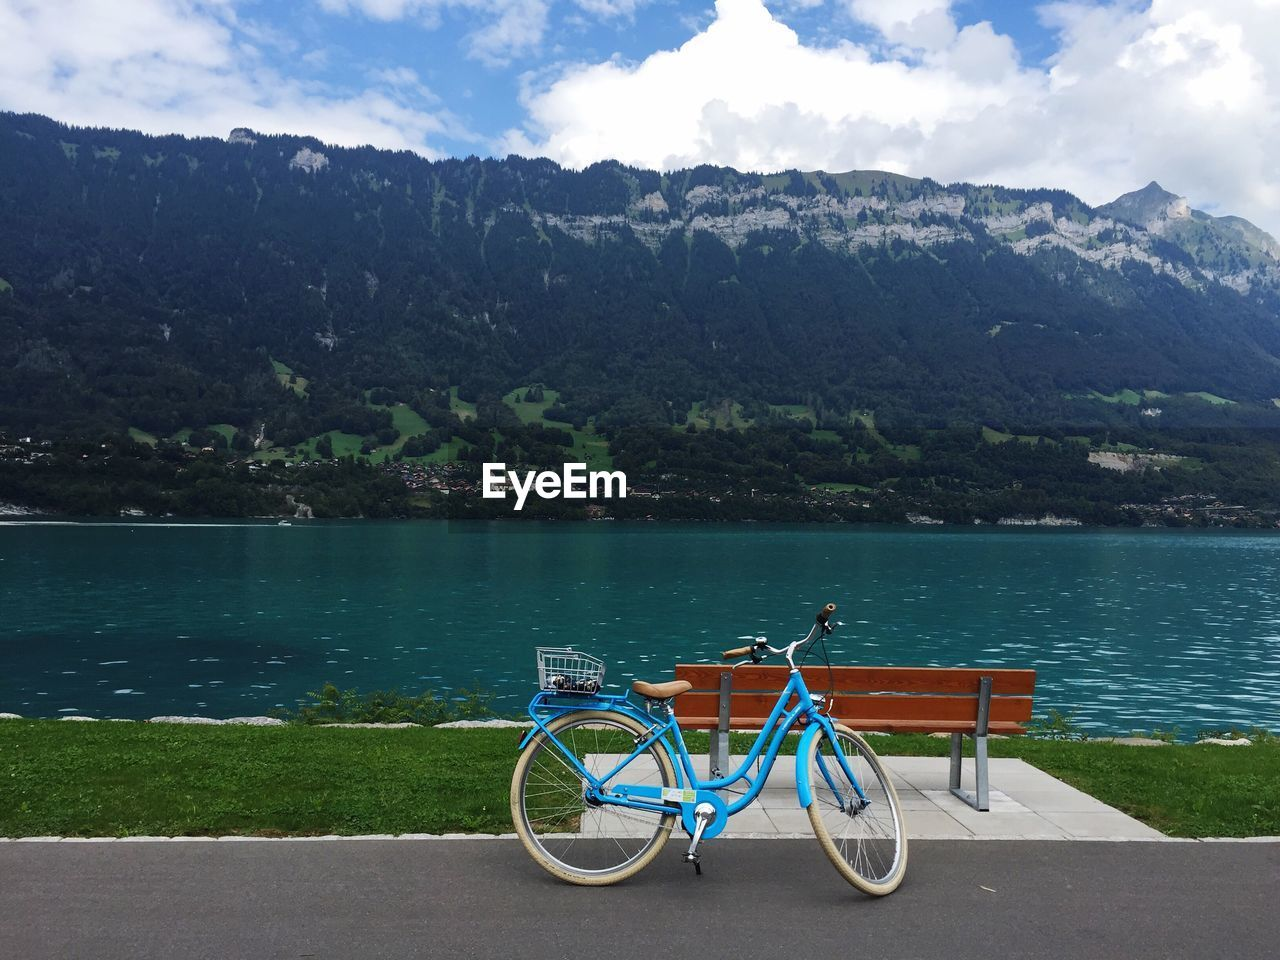 Bicycle parked by lake